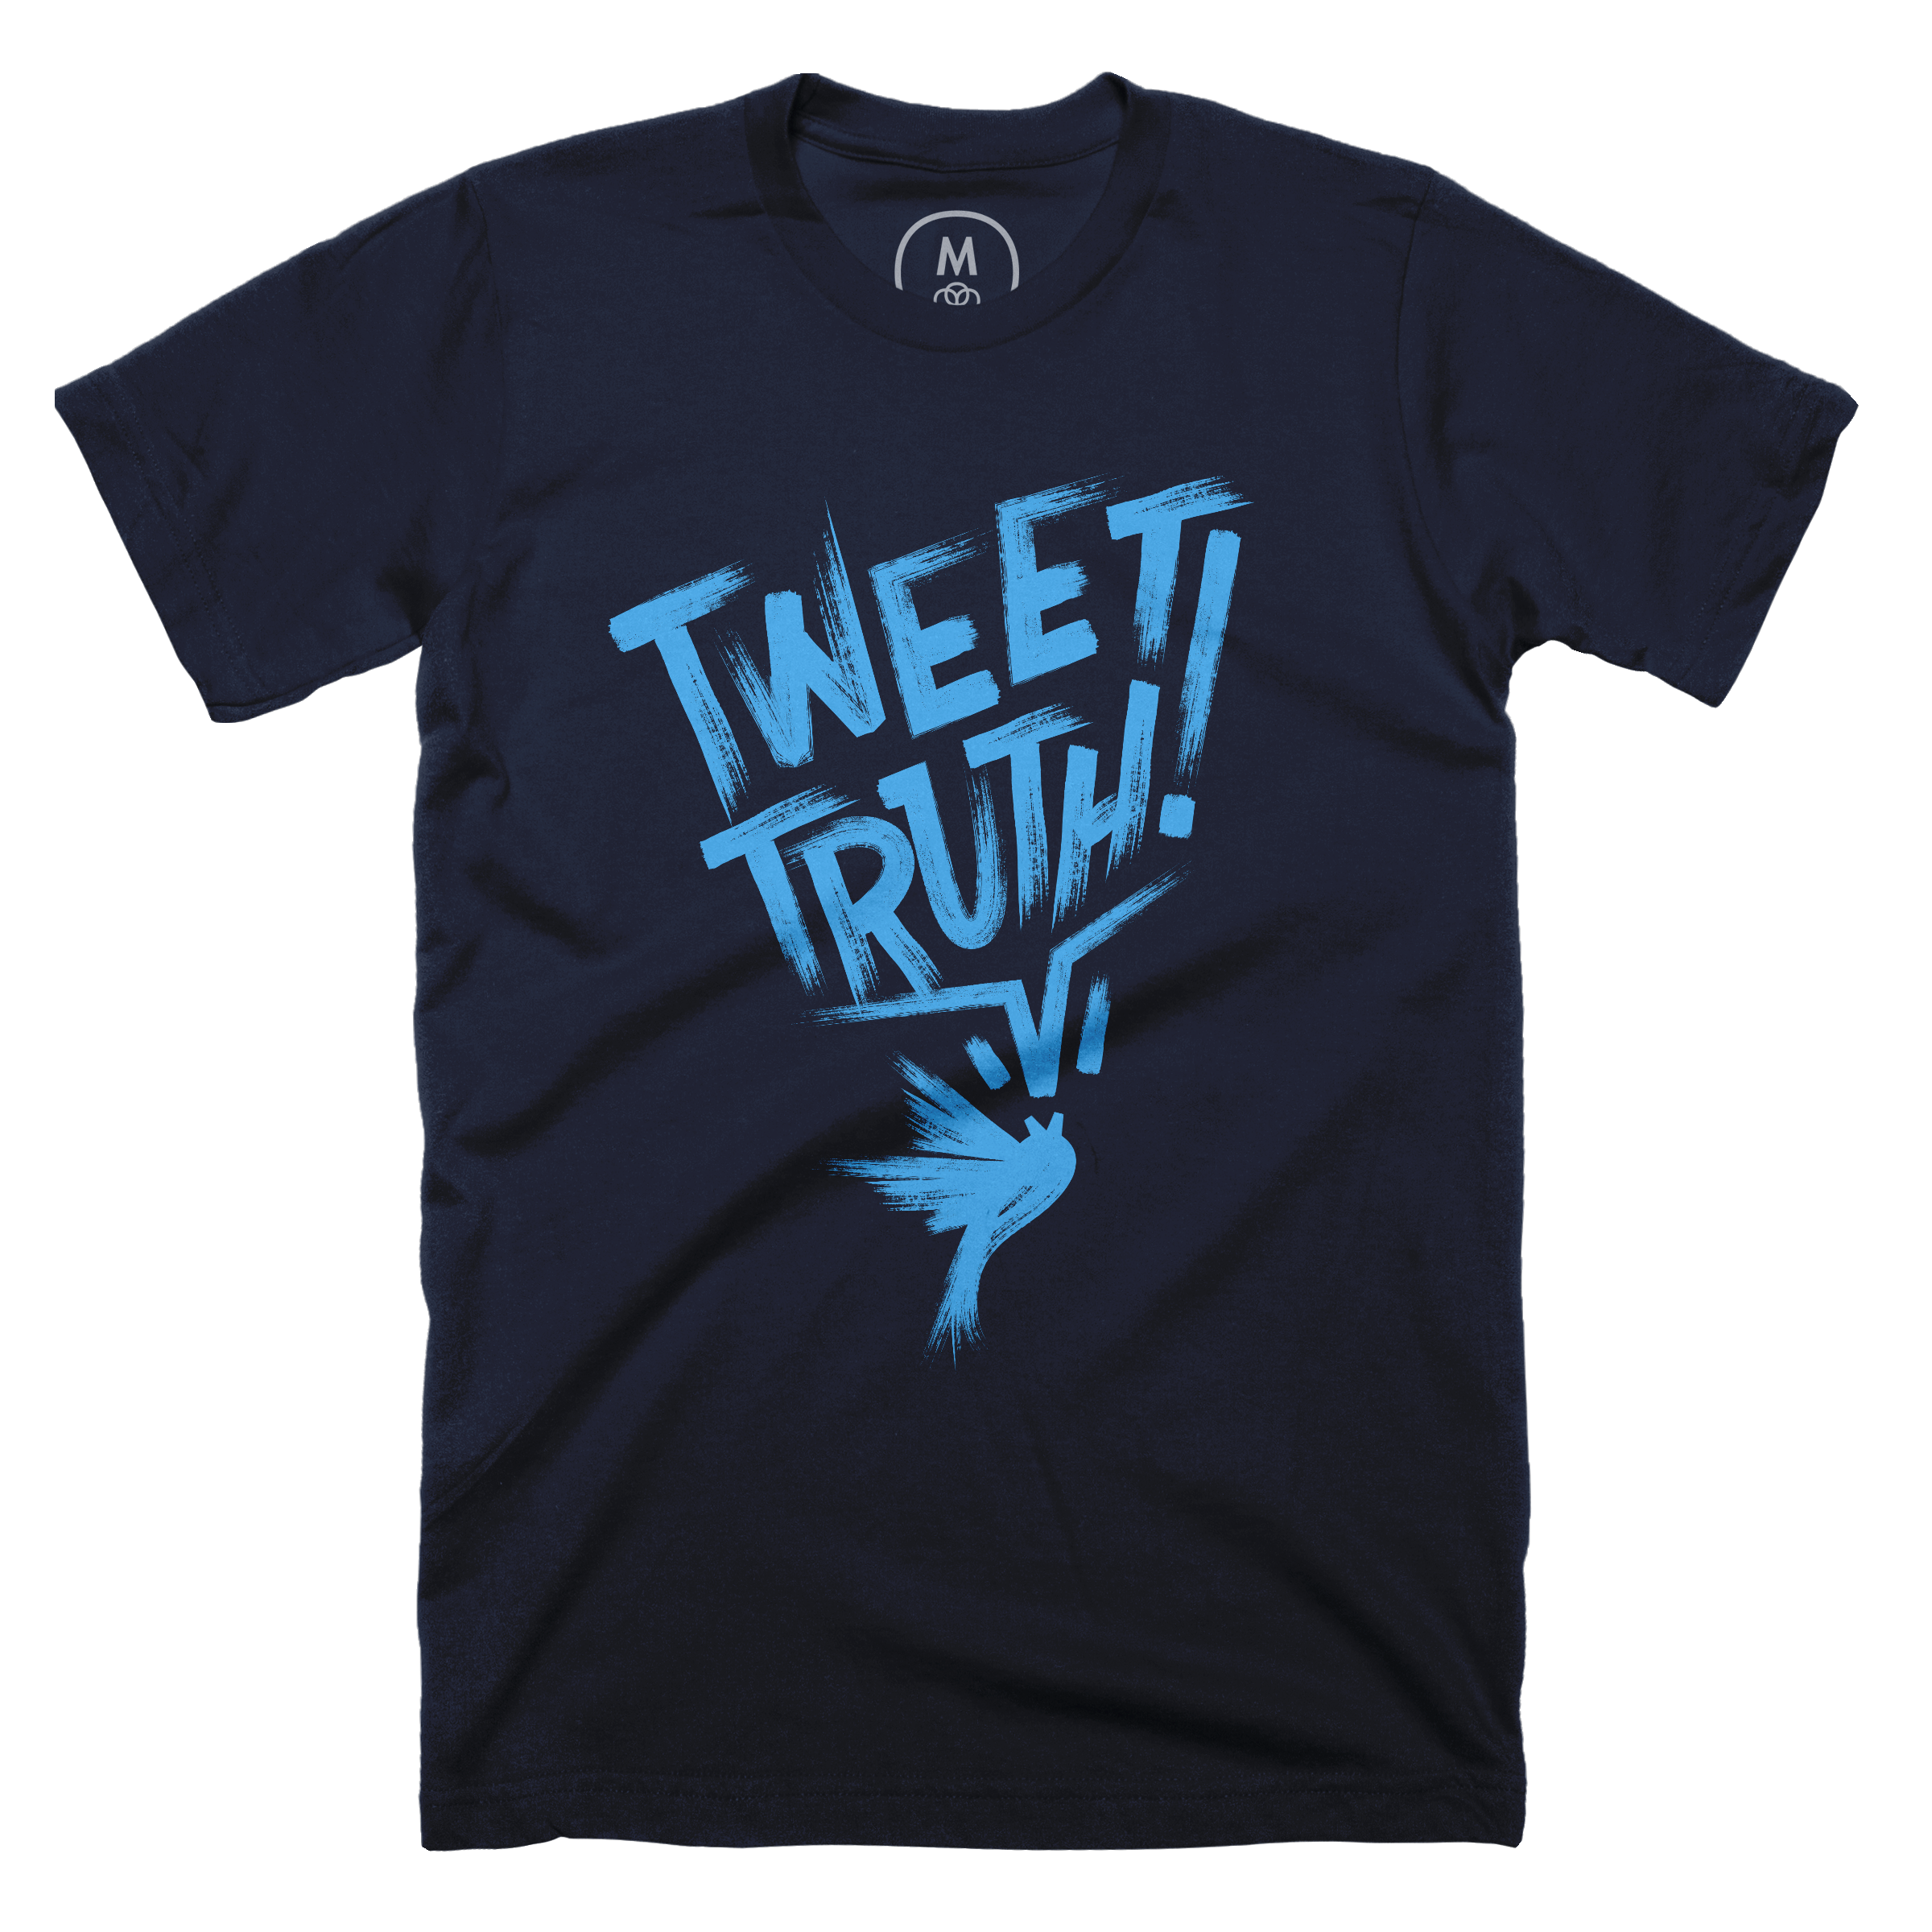 Tweet Truth! Midnight Navy (Men's)